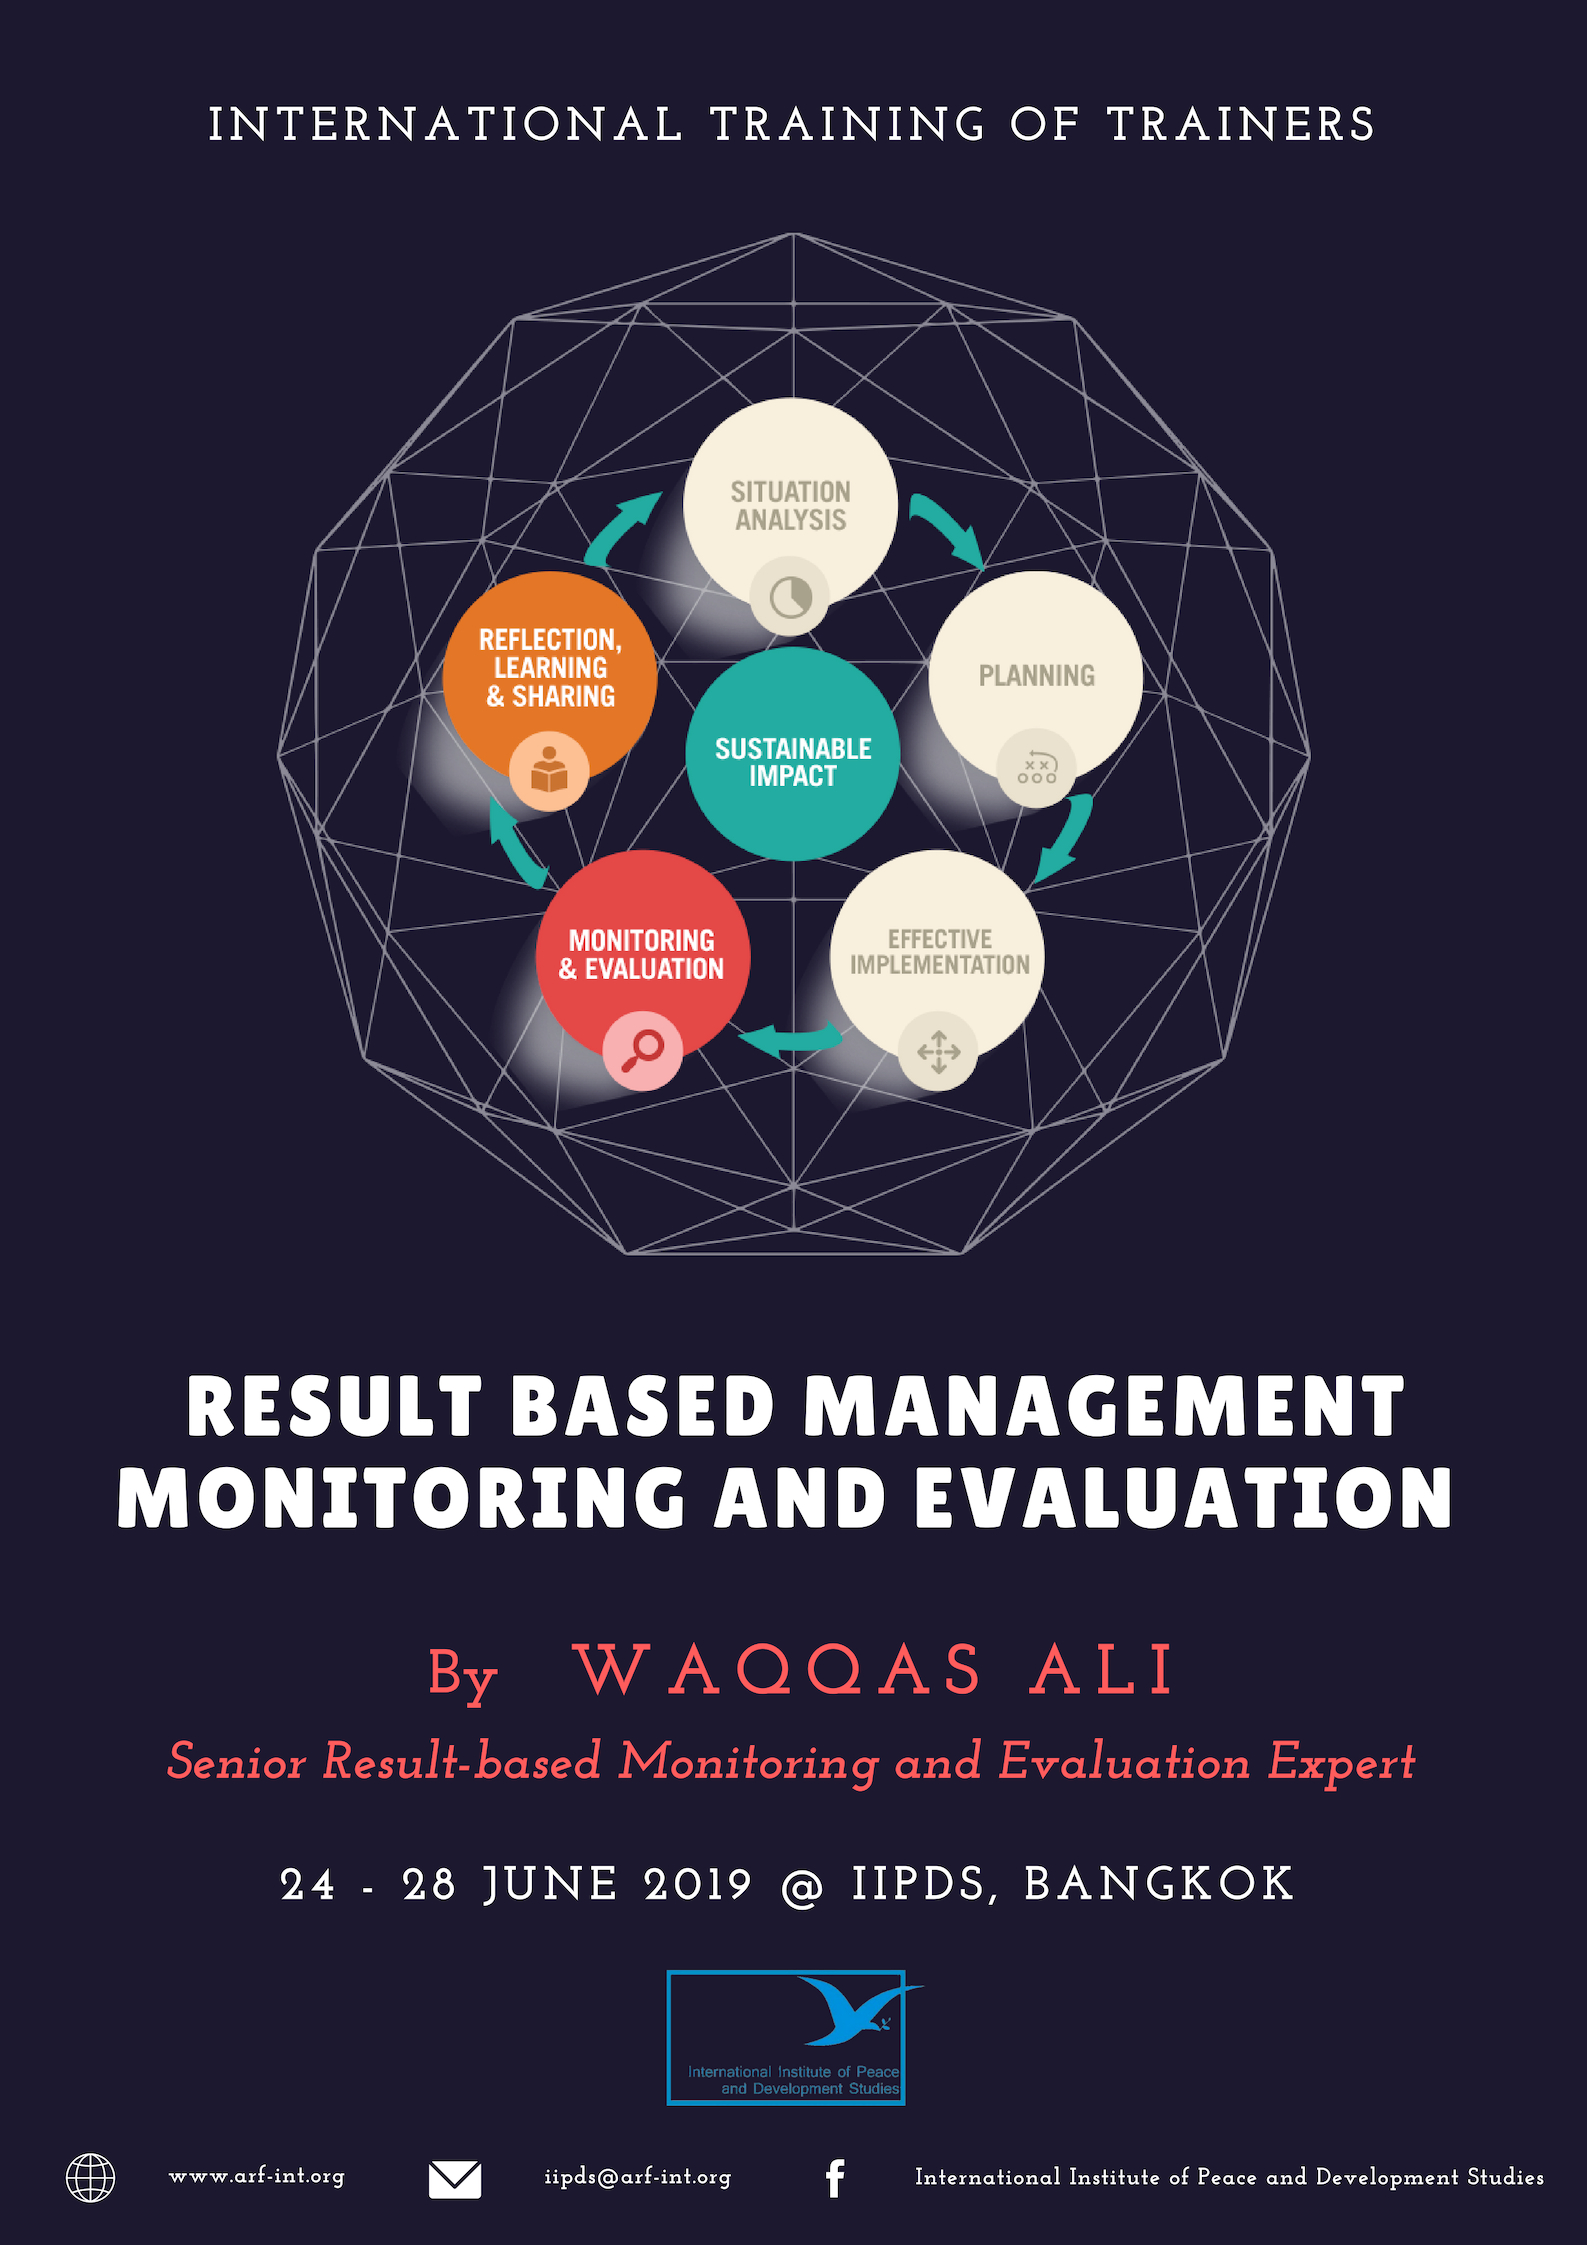 International Training of Trainers on Results Based Management Monitoring and Evaluation